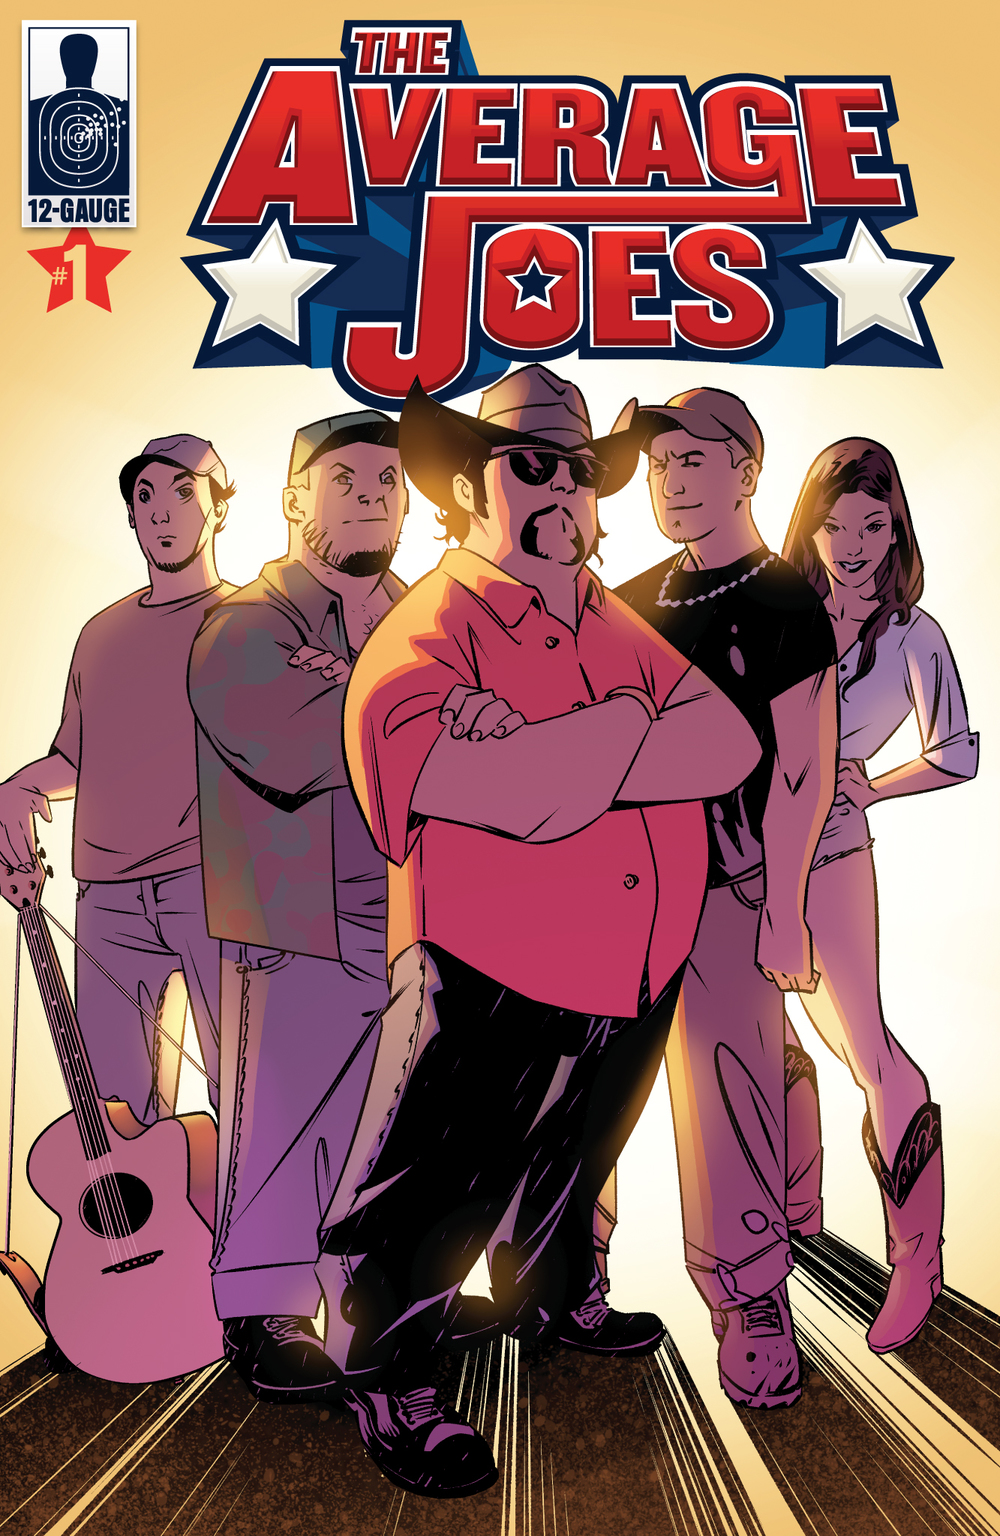 """The Average Joes Comic Series launches as an exclusive part of Colt Ford's album, """"Thanks for Listening"""", at Wal-Mart with retail and tour editions to follow."""